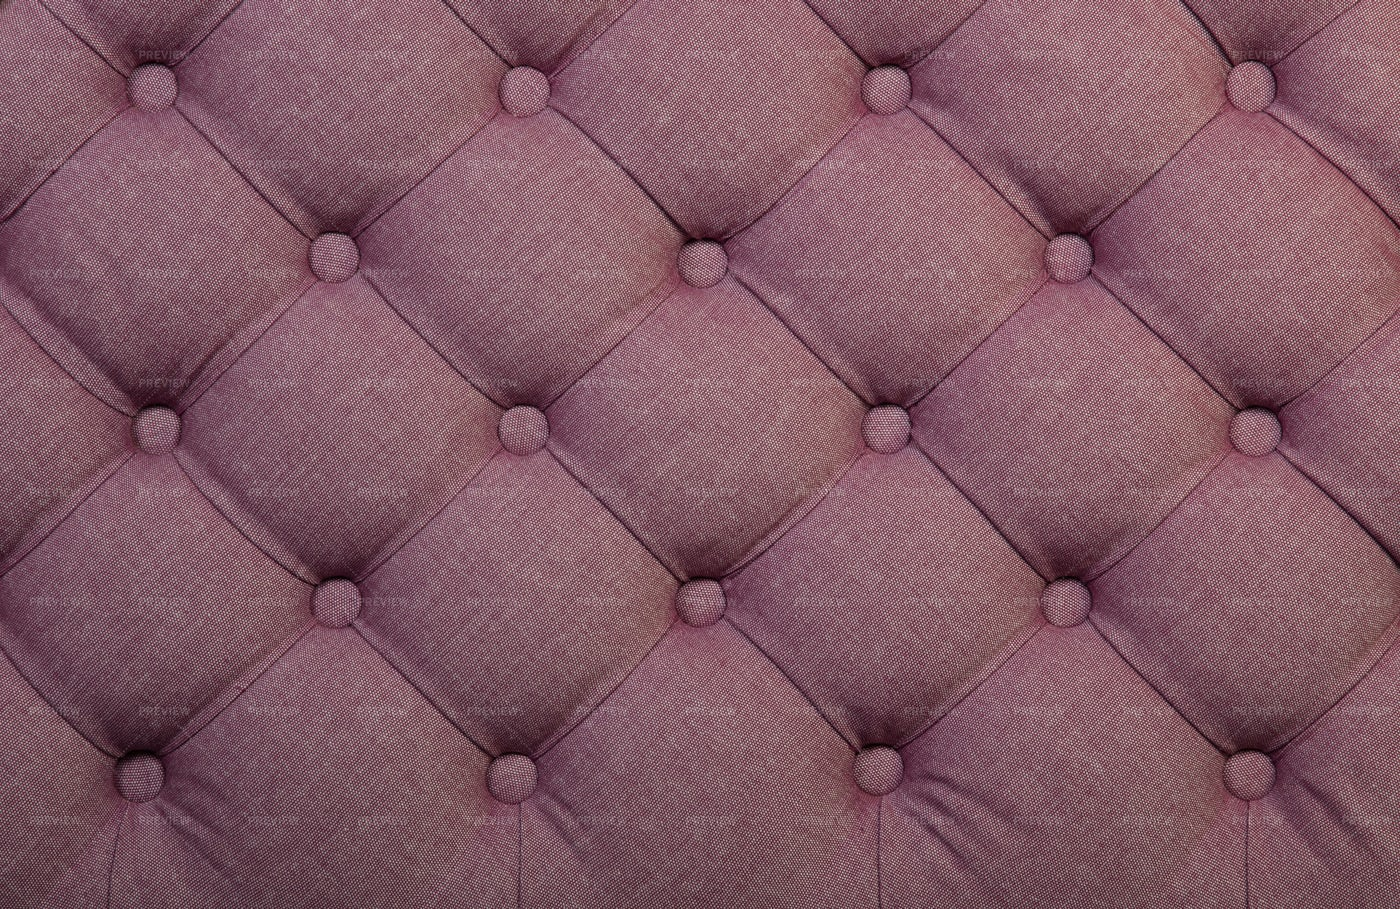 Pink Capitone Upholstery: Stock Photos